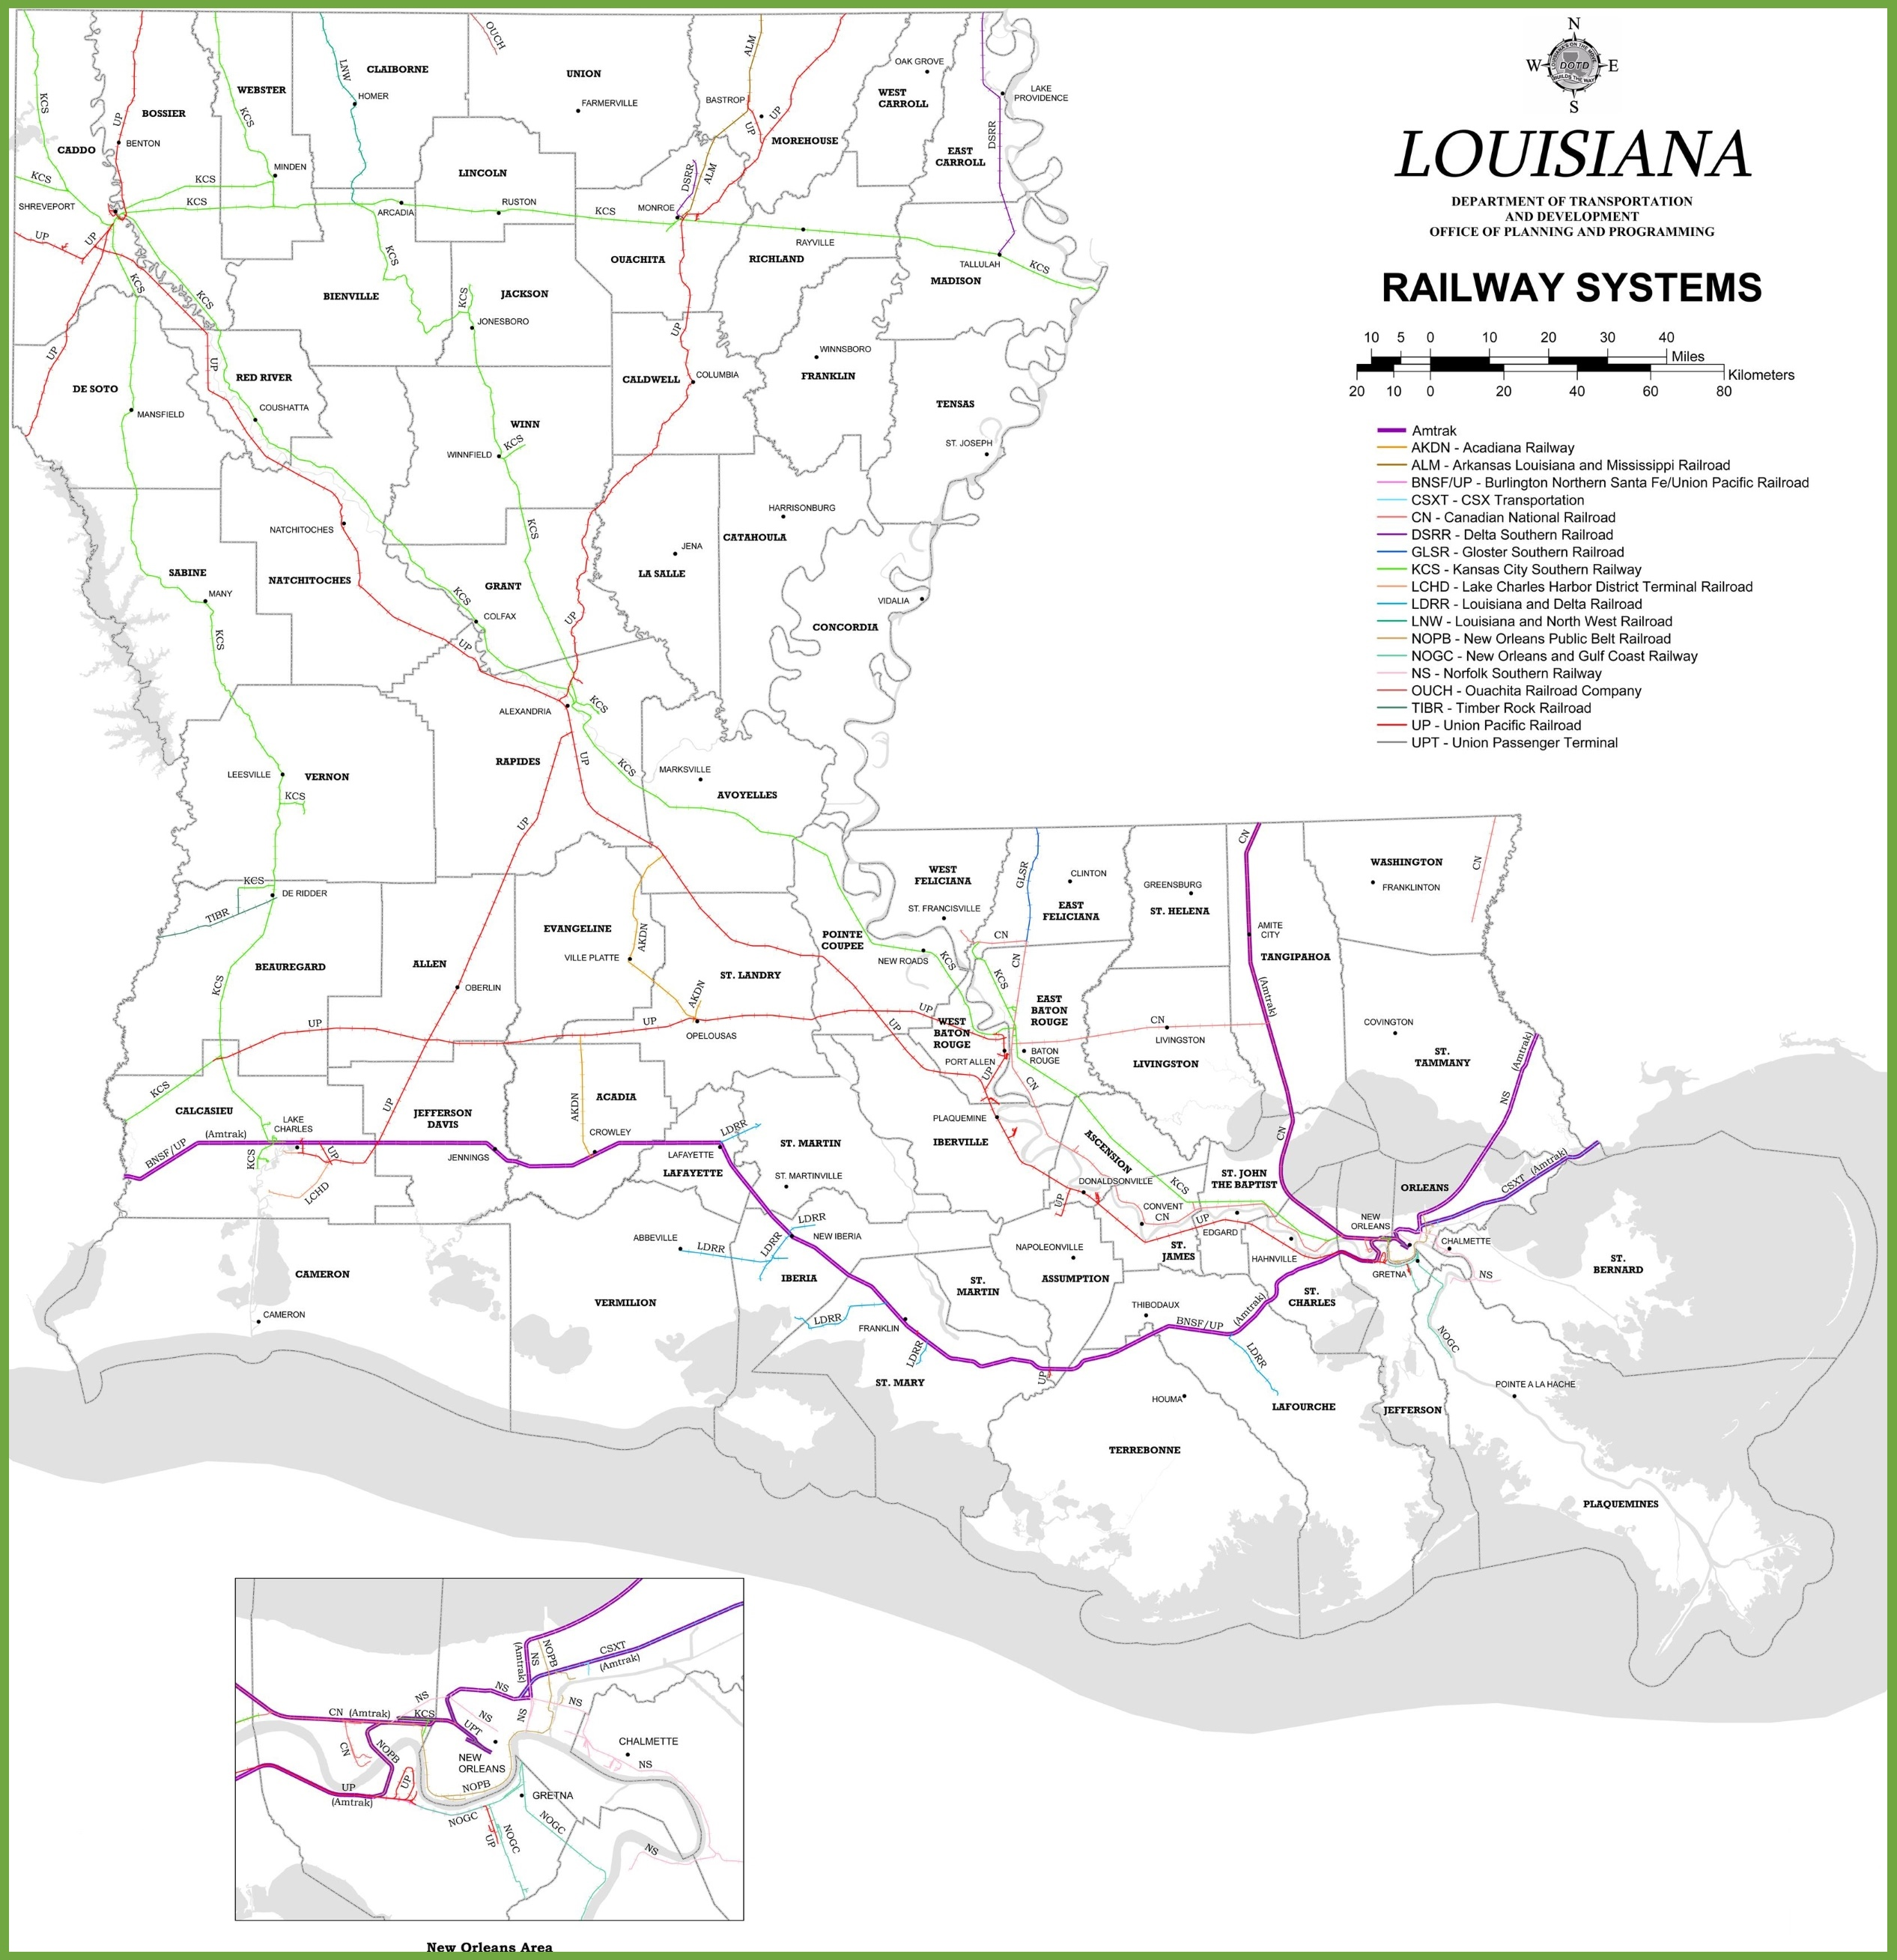 Louisiana railway map